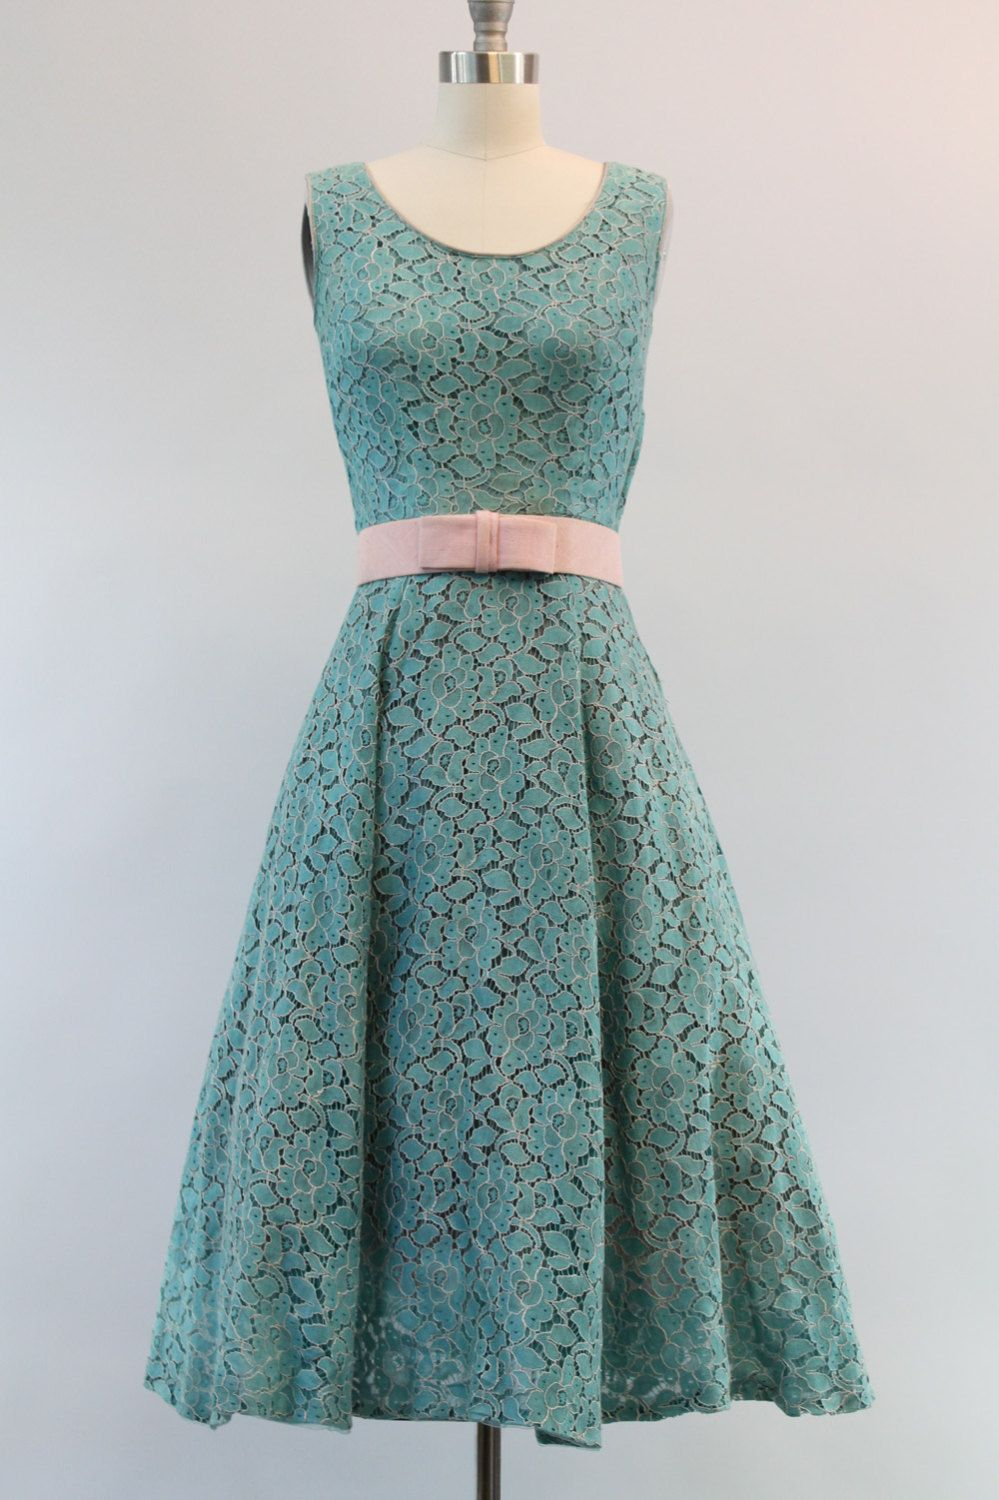 79098a5db7ce 50s Lace Frock XSmall   1950 Sea Blue and Pink by CrushVintage ...